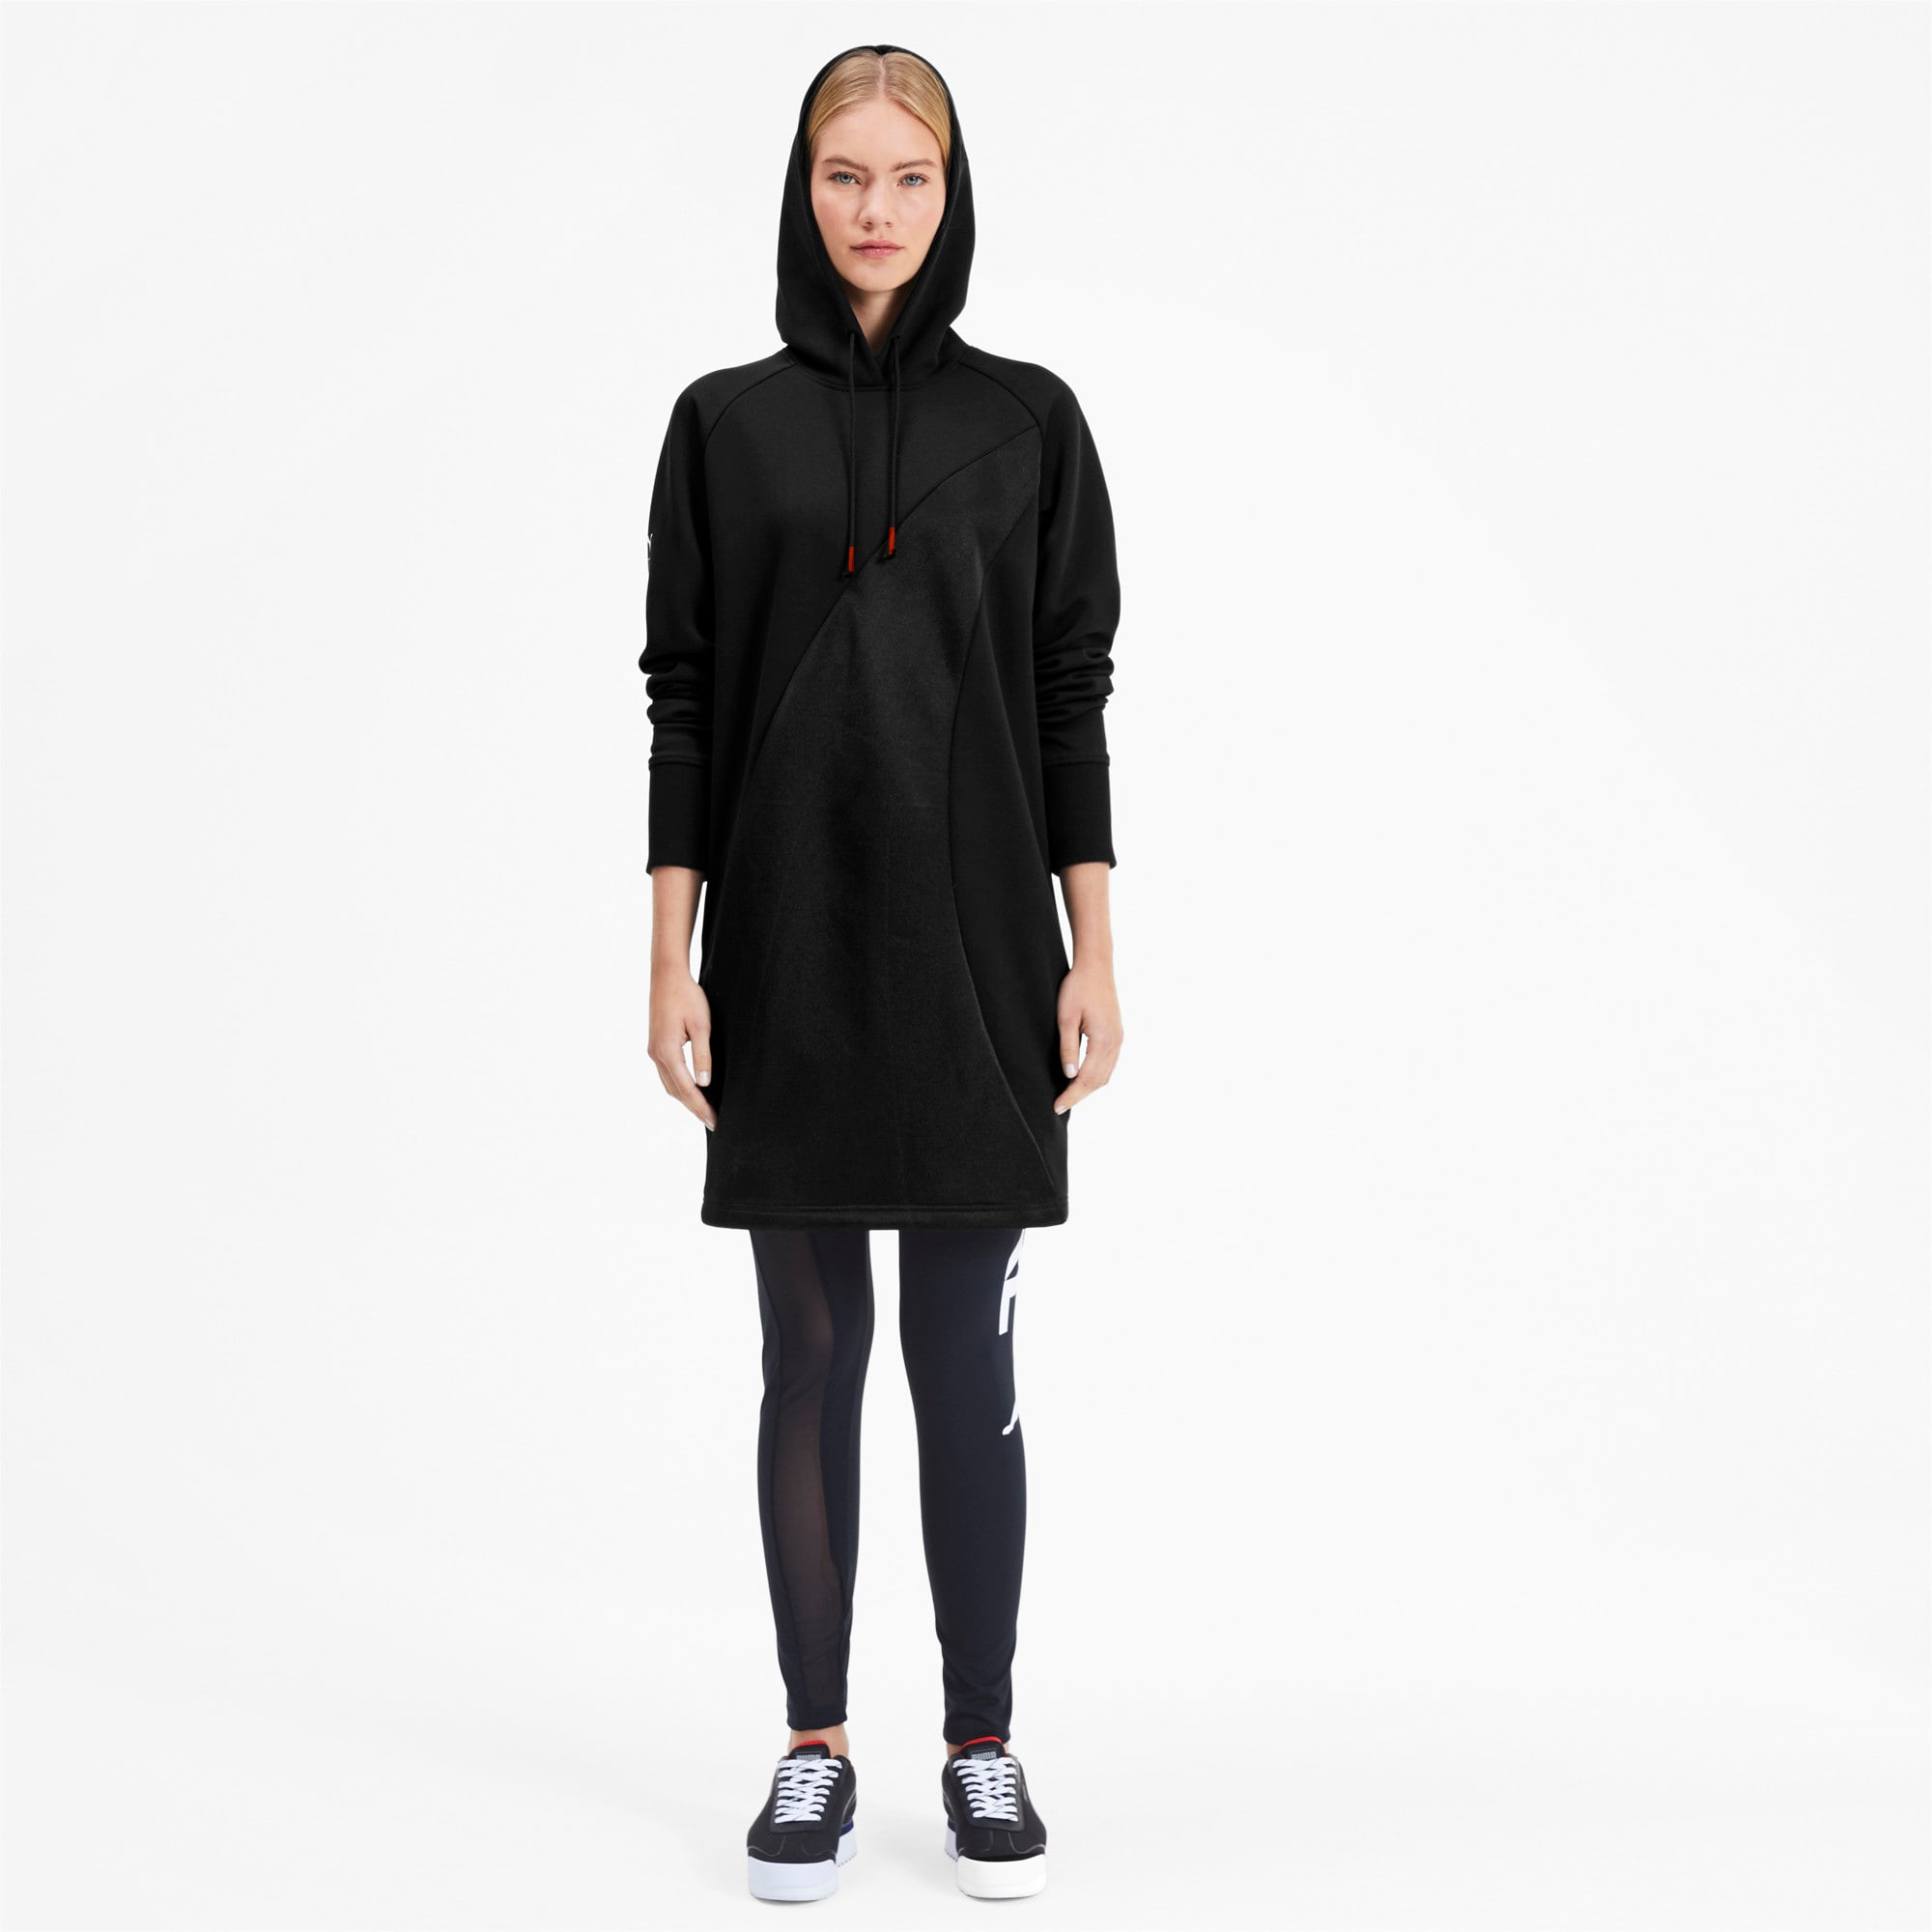 Thumbnail 4 of PUMA x KARL LAGERFELD Hooded Women's Dress, Puma Black, medium